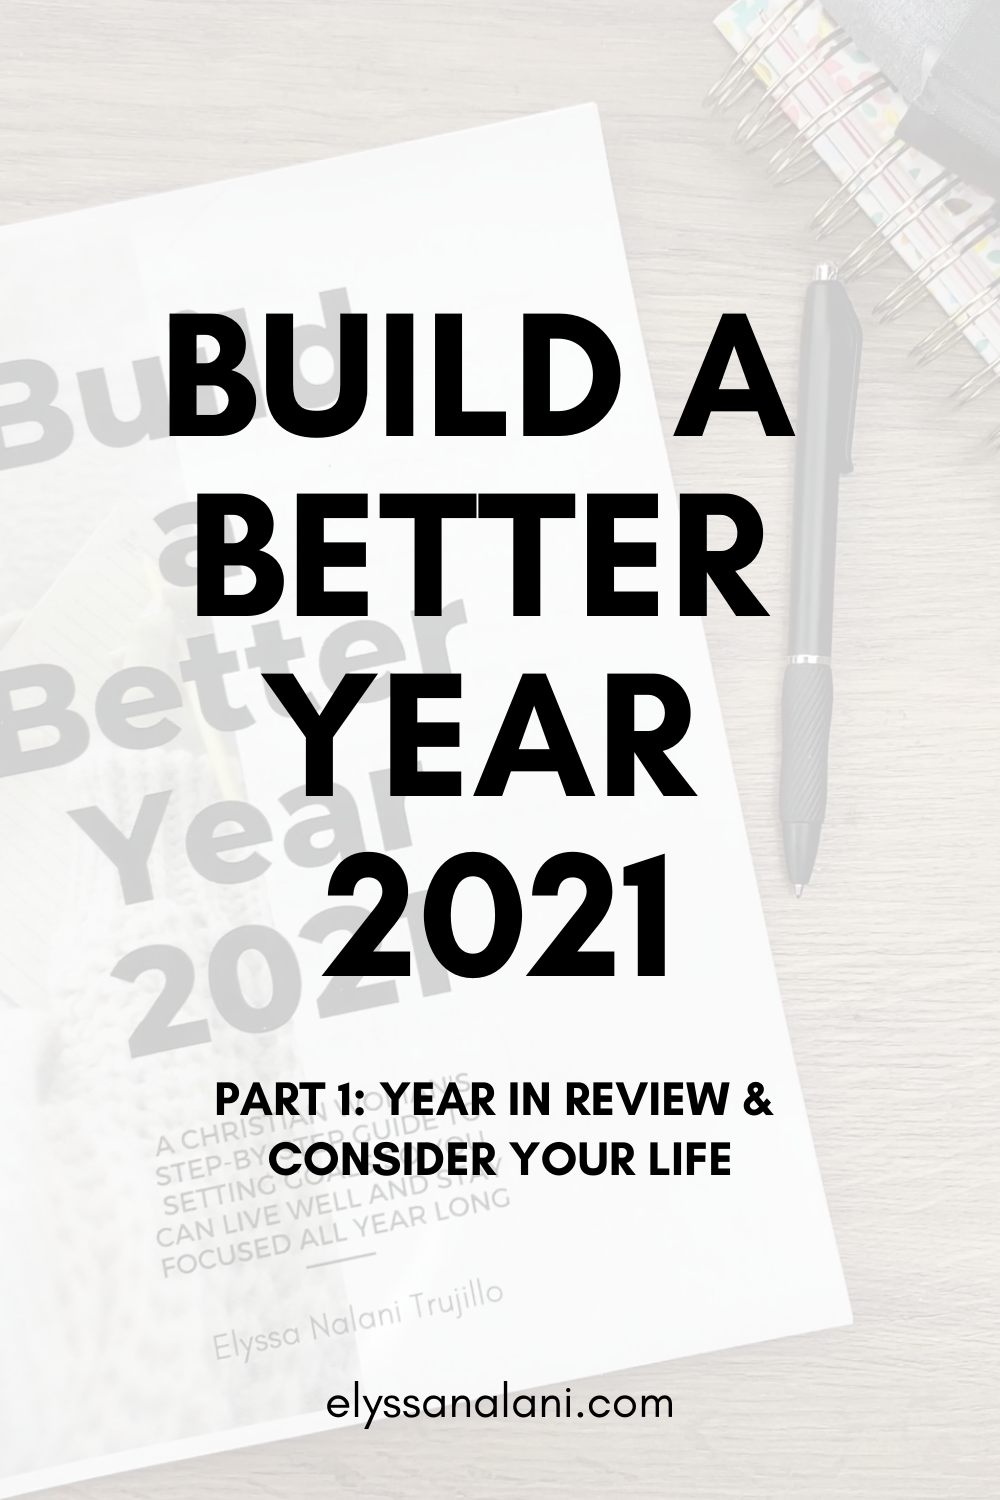 Build a Better Year 2021 | Part 1 | Year in Review